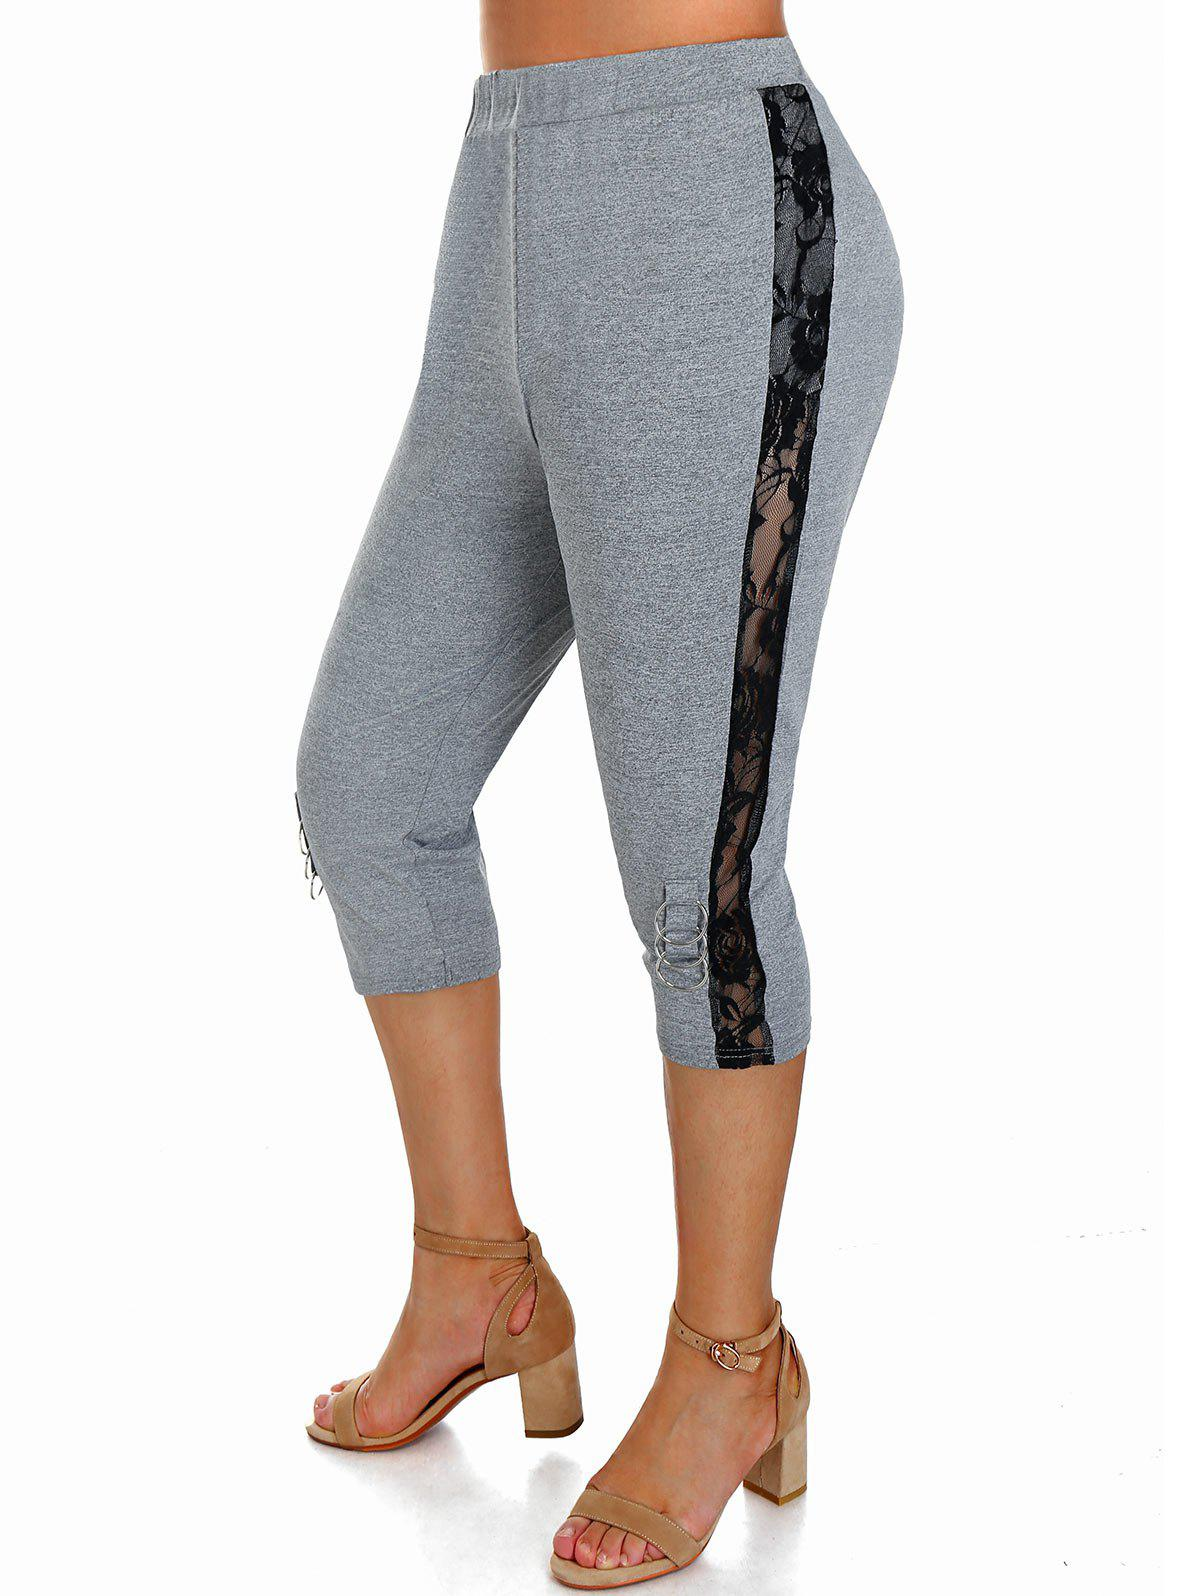 Plus Size Floral Lace Insert O Ring Fitted Leggings - ASH GRAY 5X